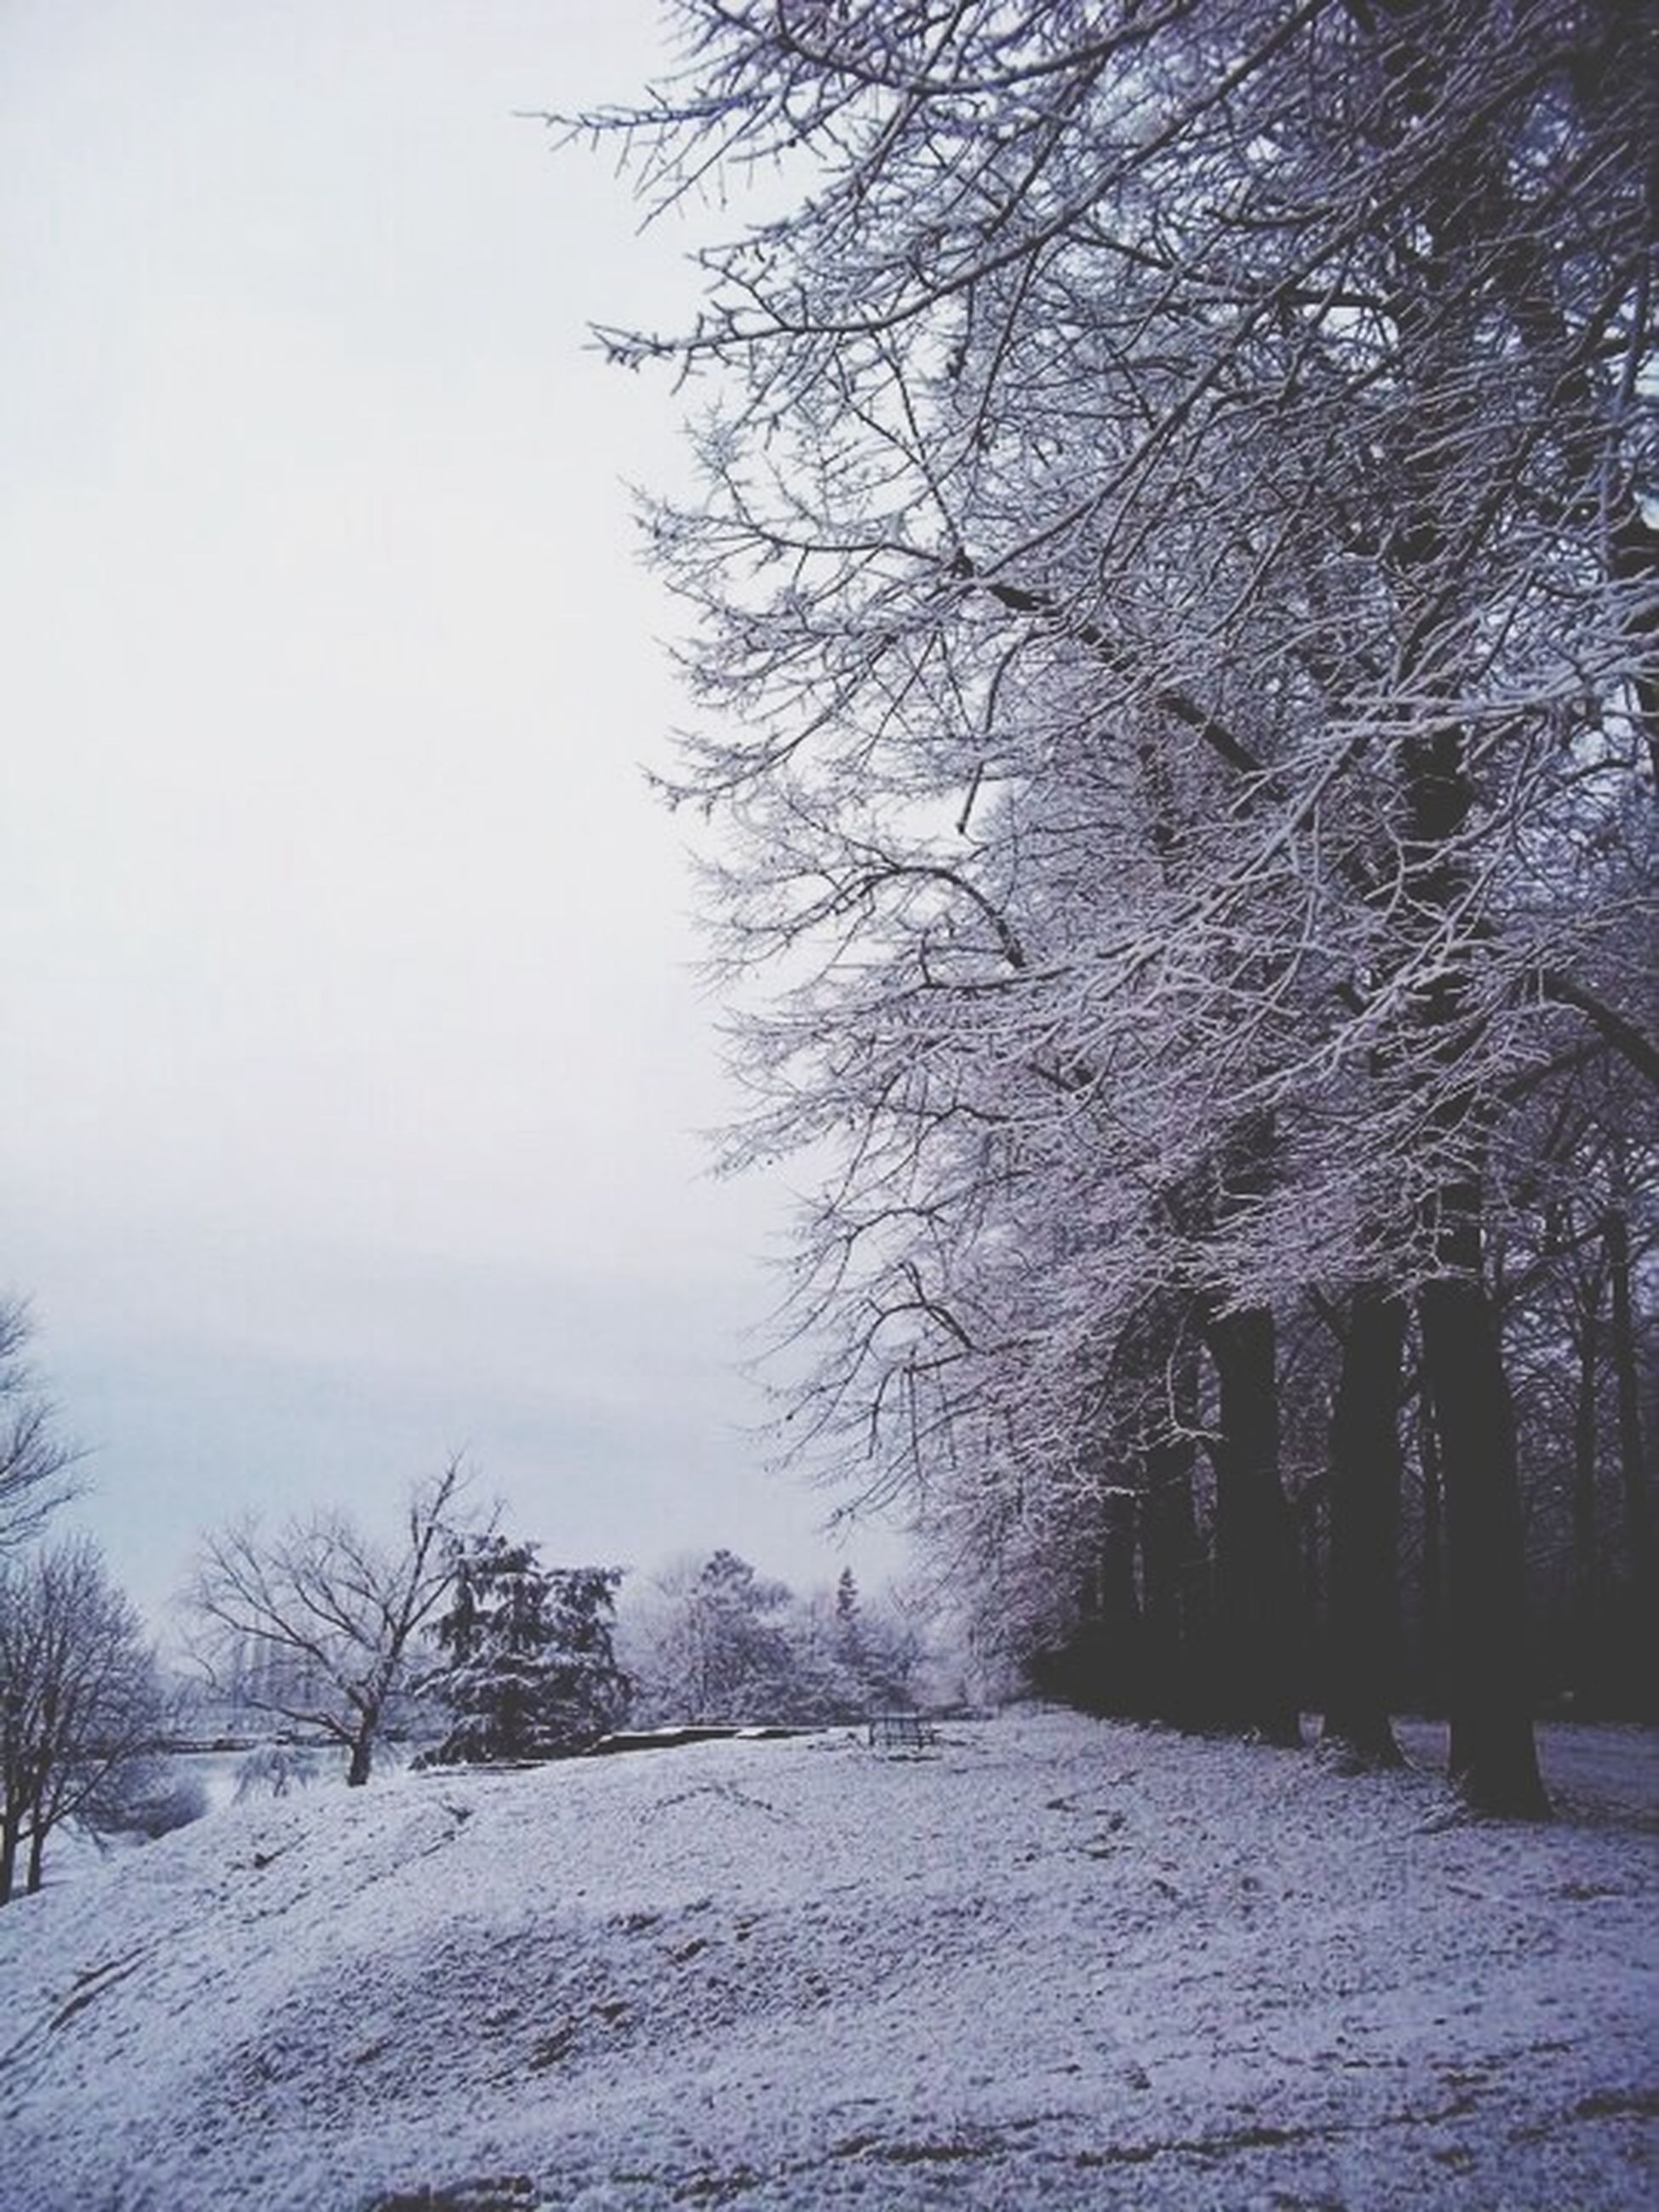 snow, winter, cold temperature, tree, tranquility, tranquil scene, weather, season, nature, the way forward, beauty in nature, bare tree, scenics, landscape, sky, covering, branch, non-urban scene, field, day